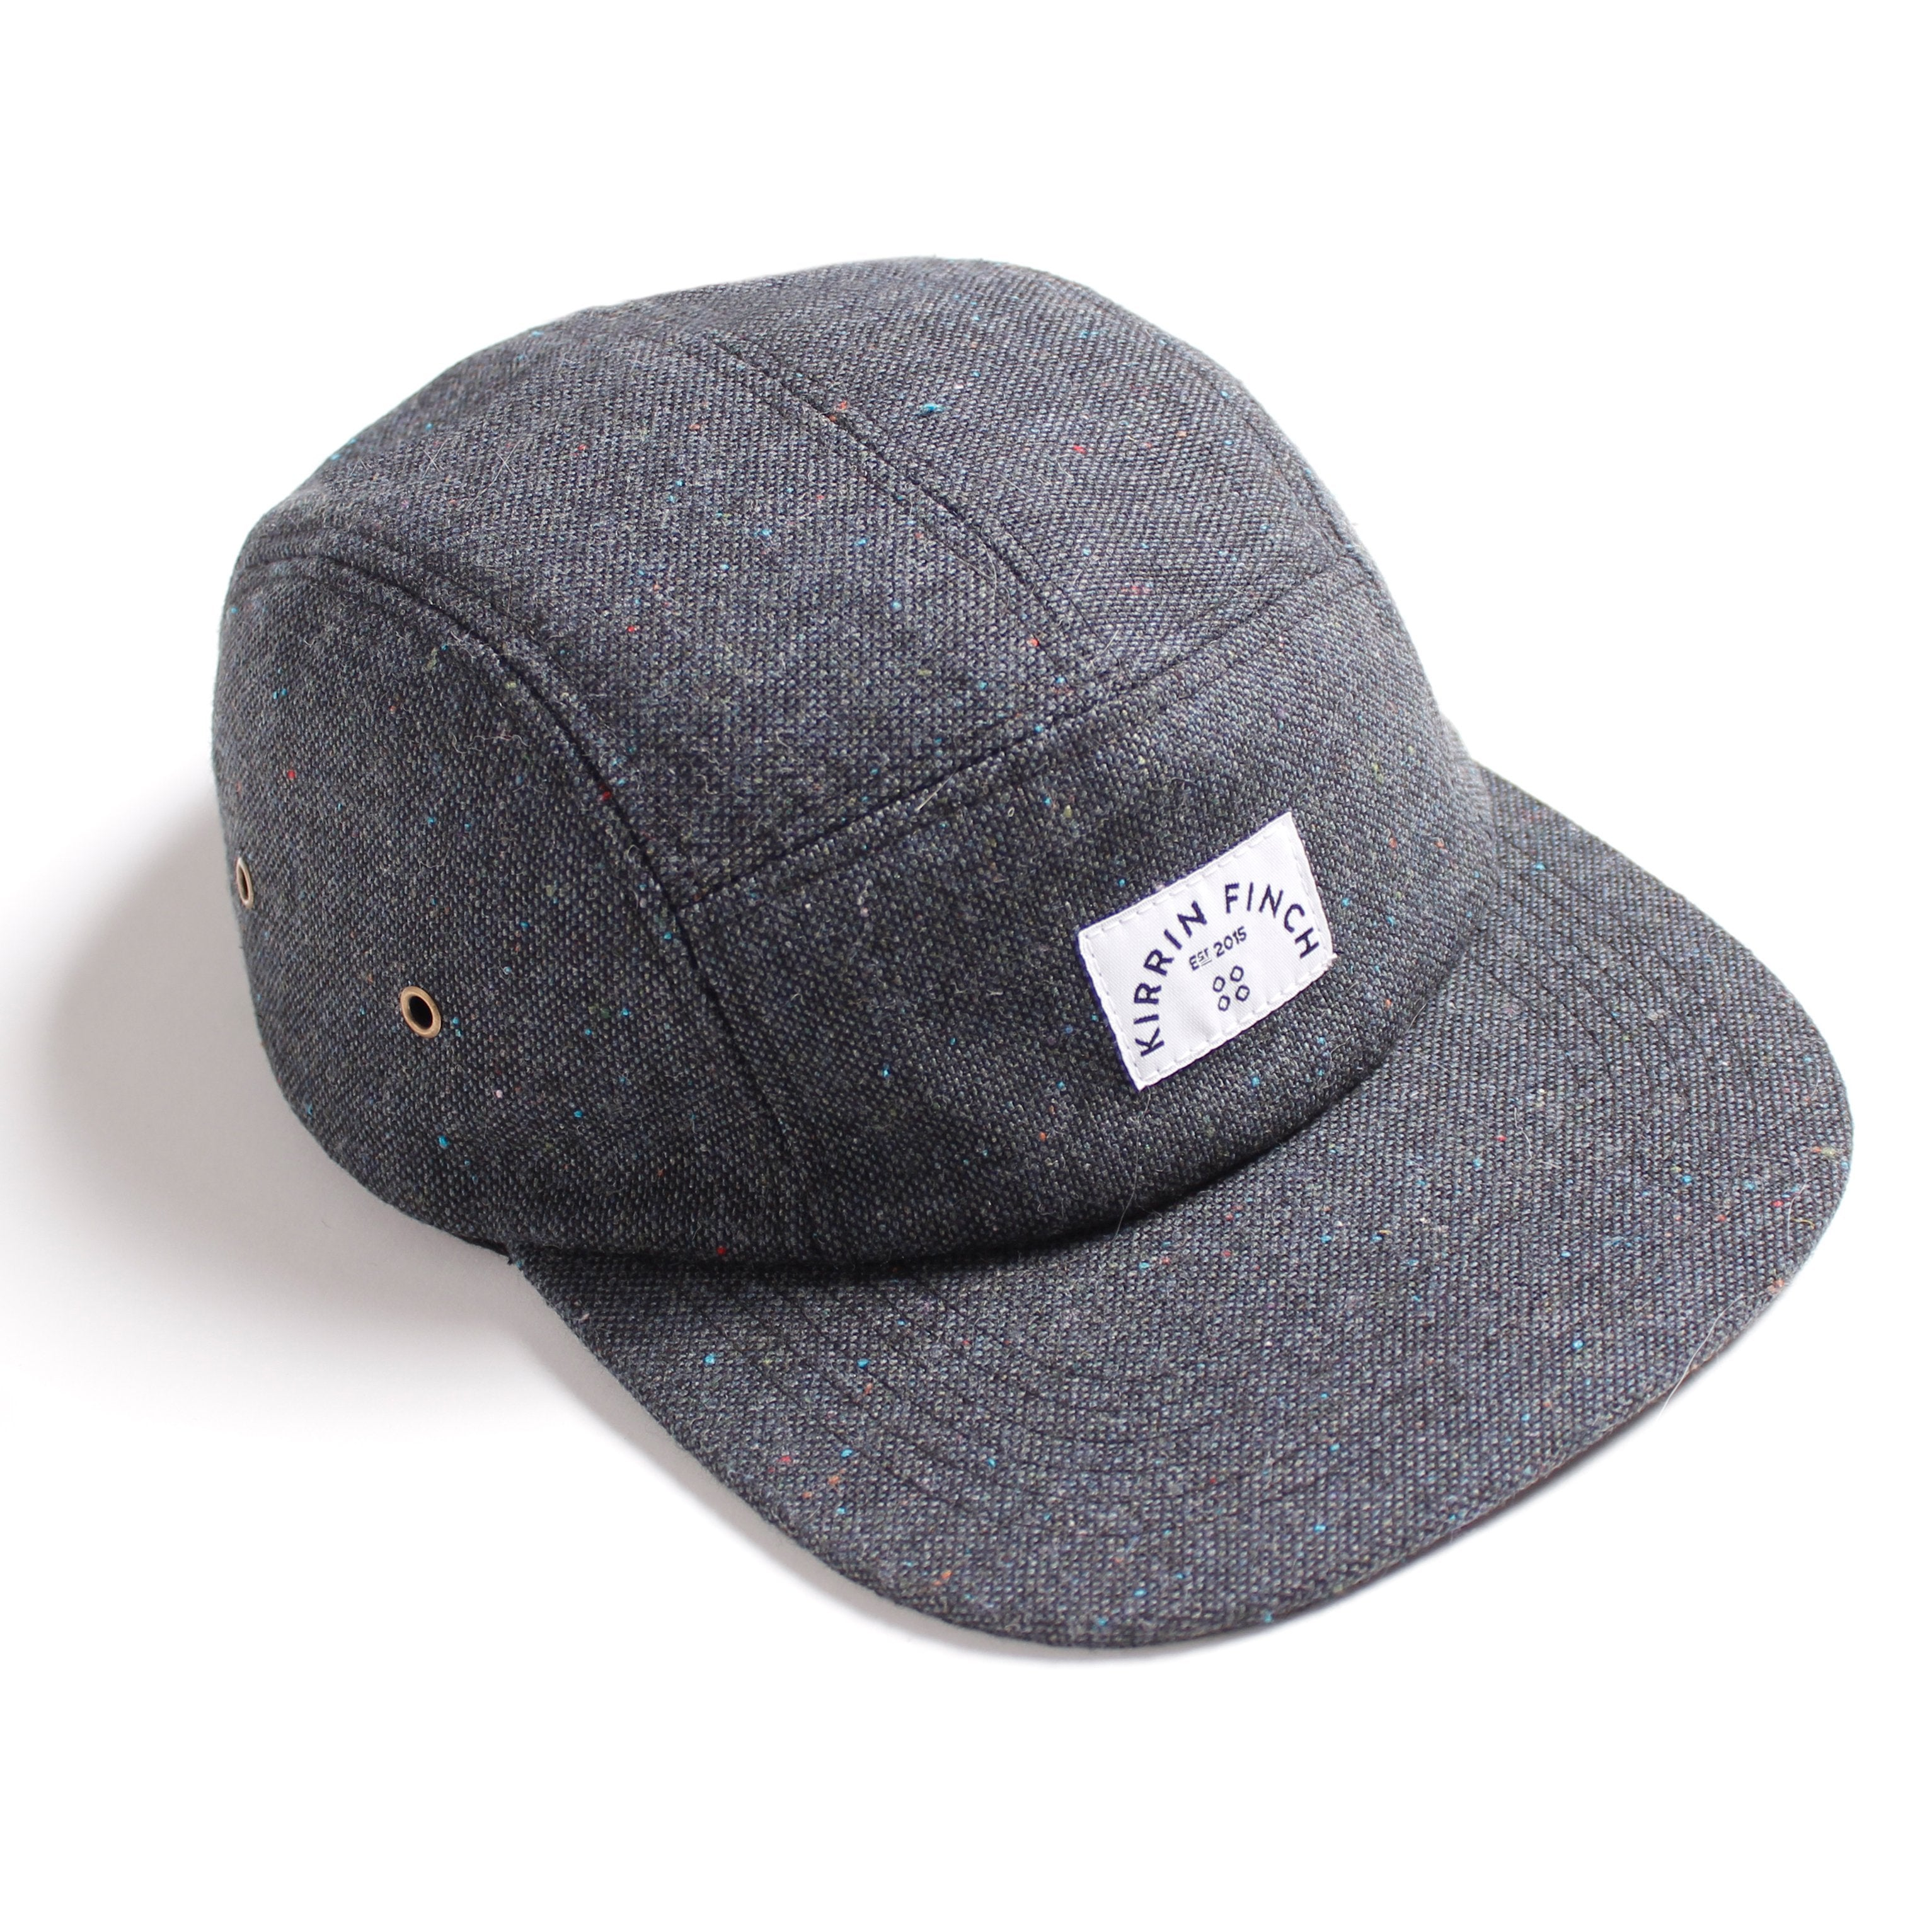 41c21afcc Charcoal Wool 5 Panel Hat